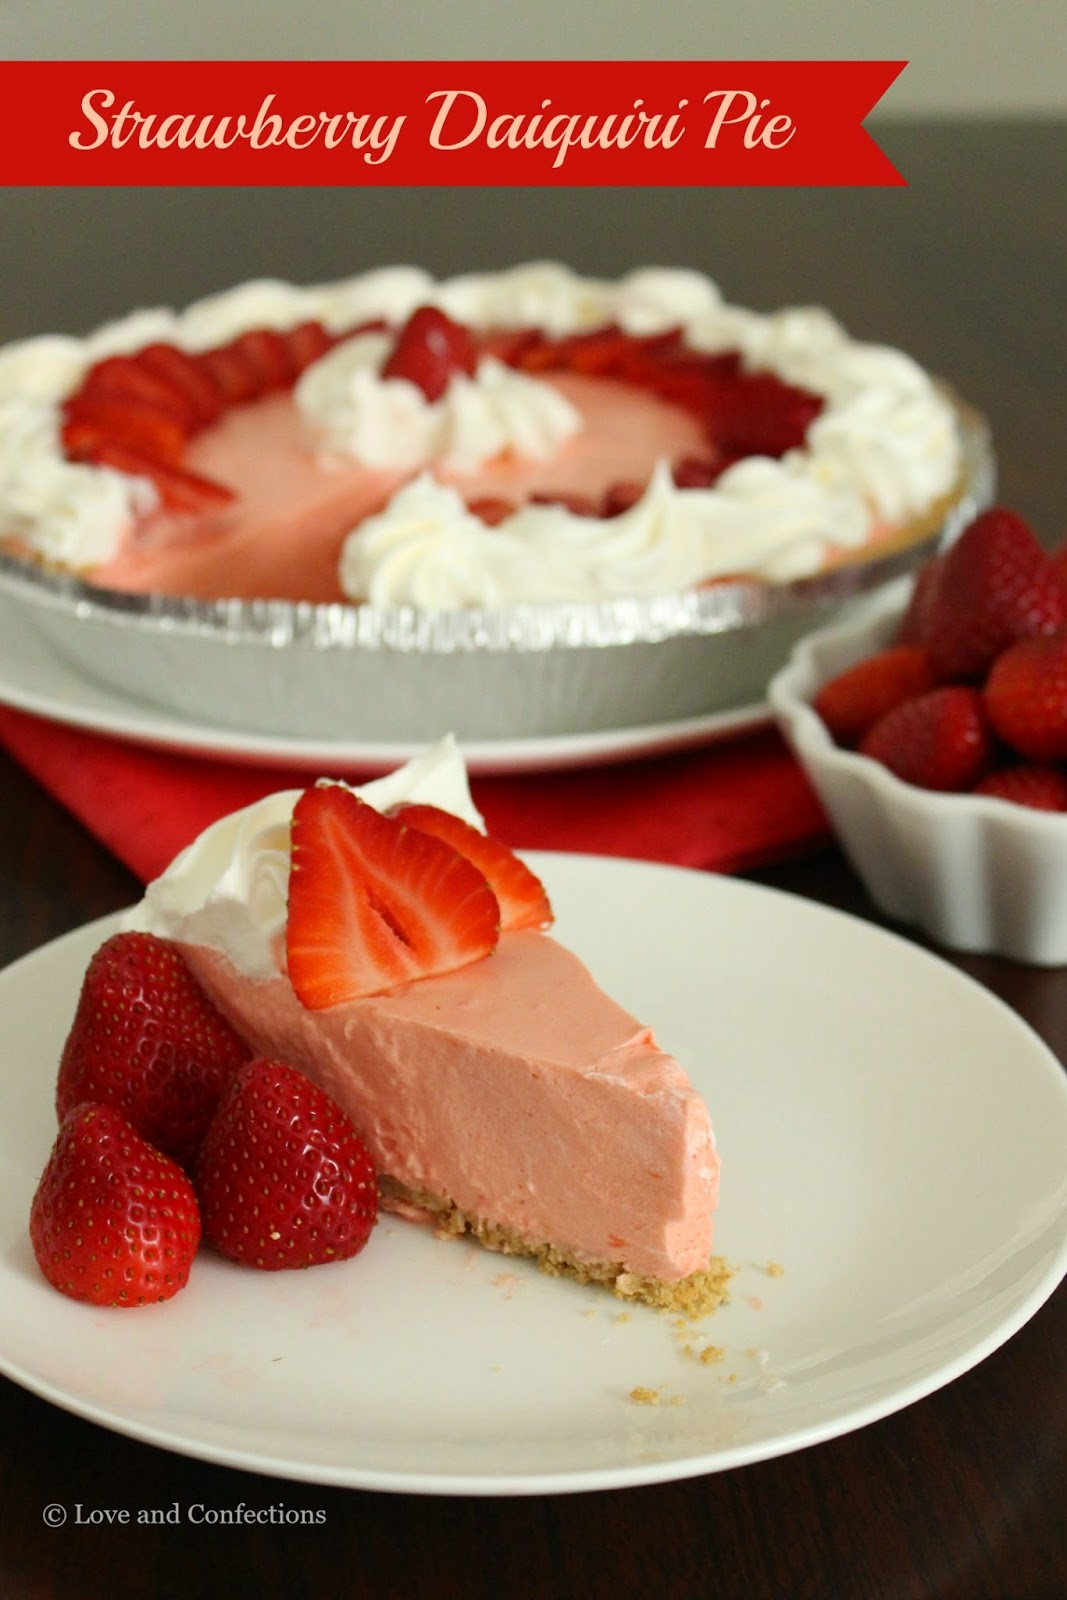 Strawberry Daiquiri Pie from LoveandConfections.com